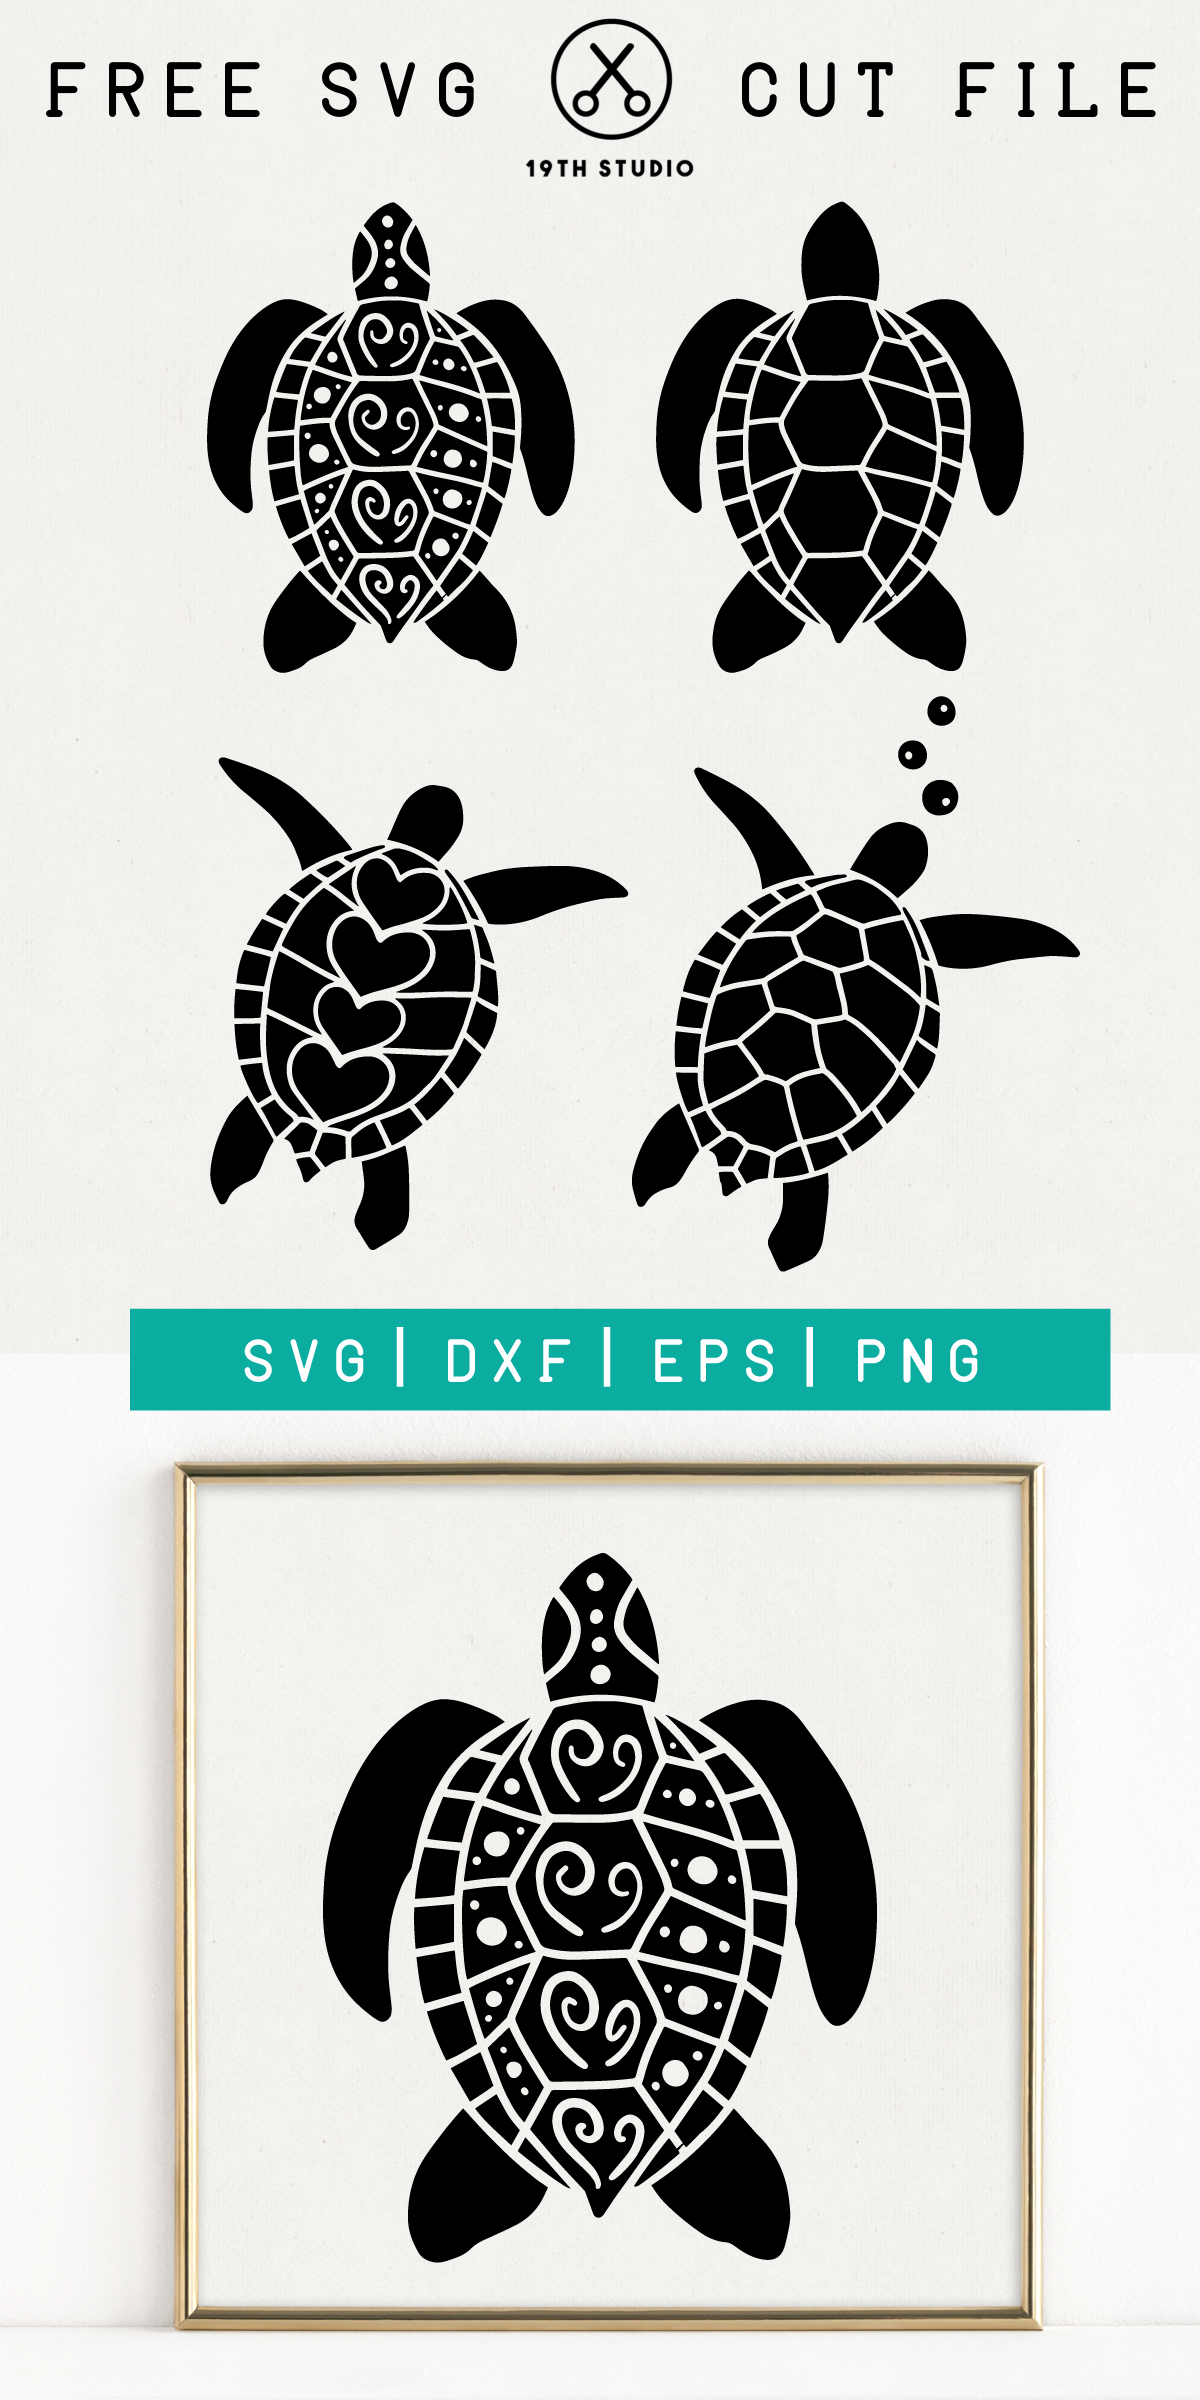 sea turtle svg free #575, Download drawings